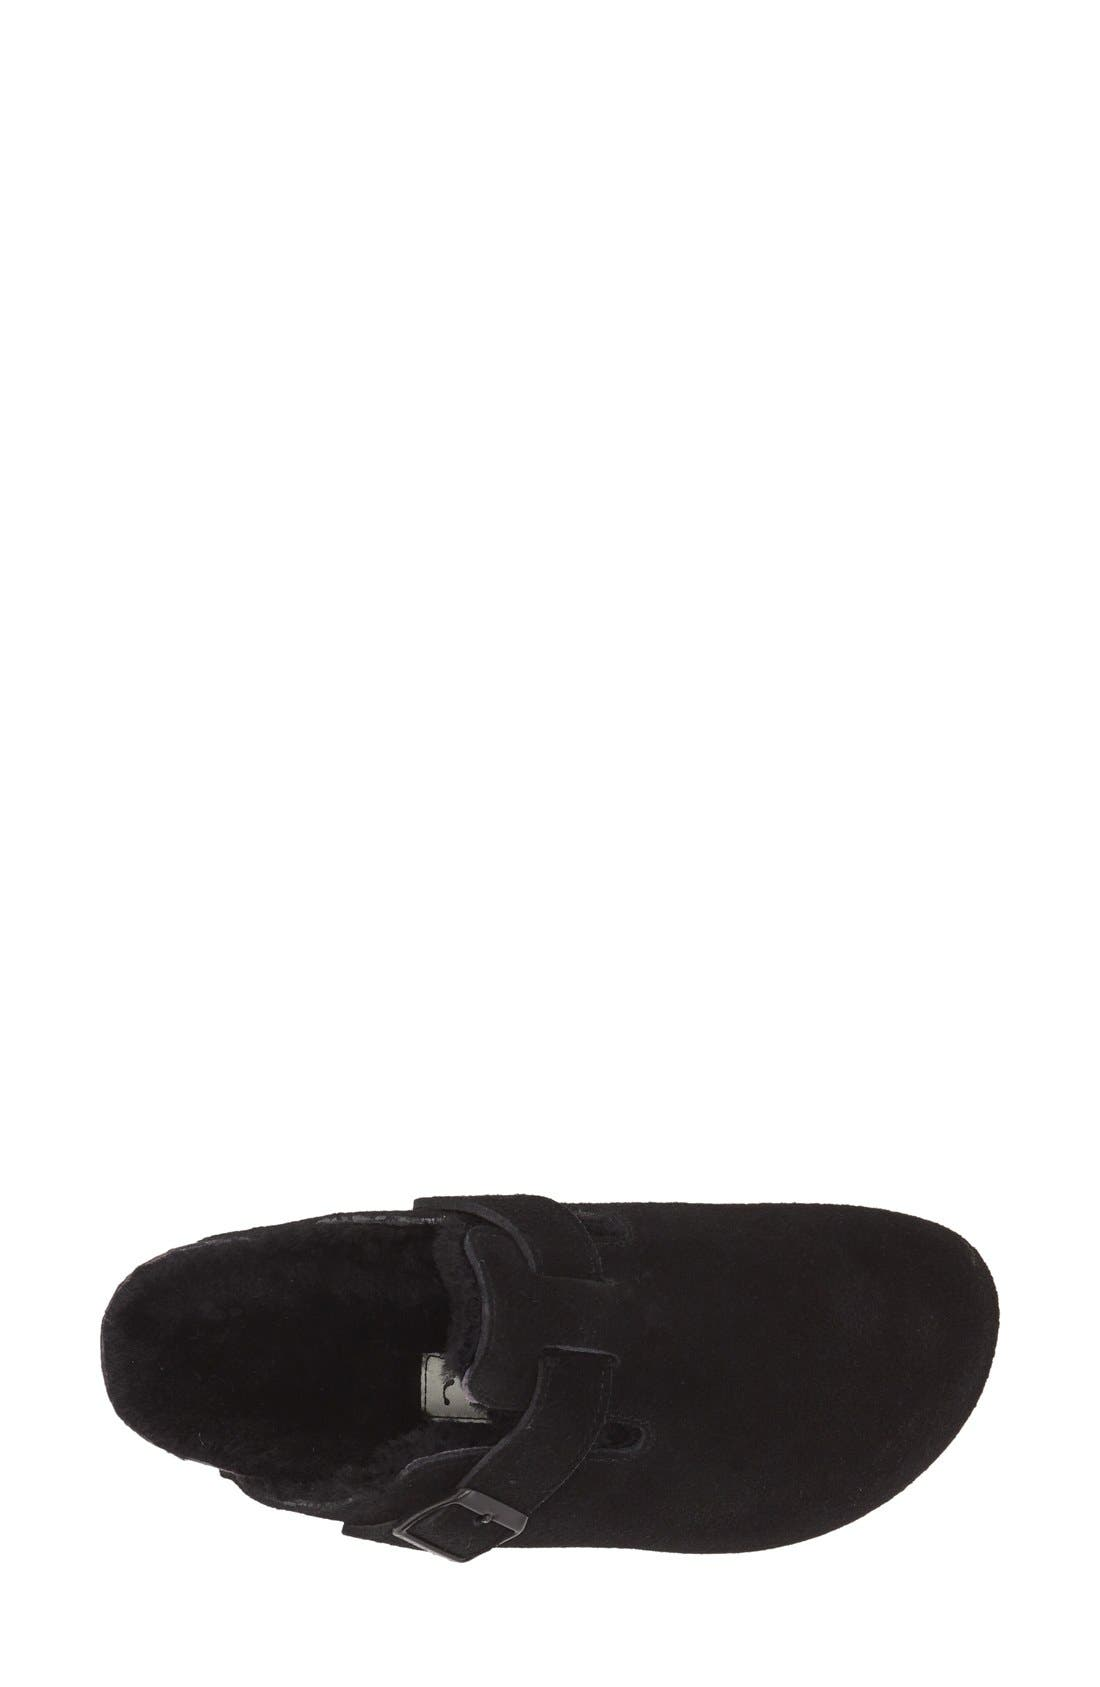 'Boston' Genuine Shearling Lined Clog,                             Alternate thumbnail 4, color,                             Black